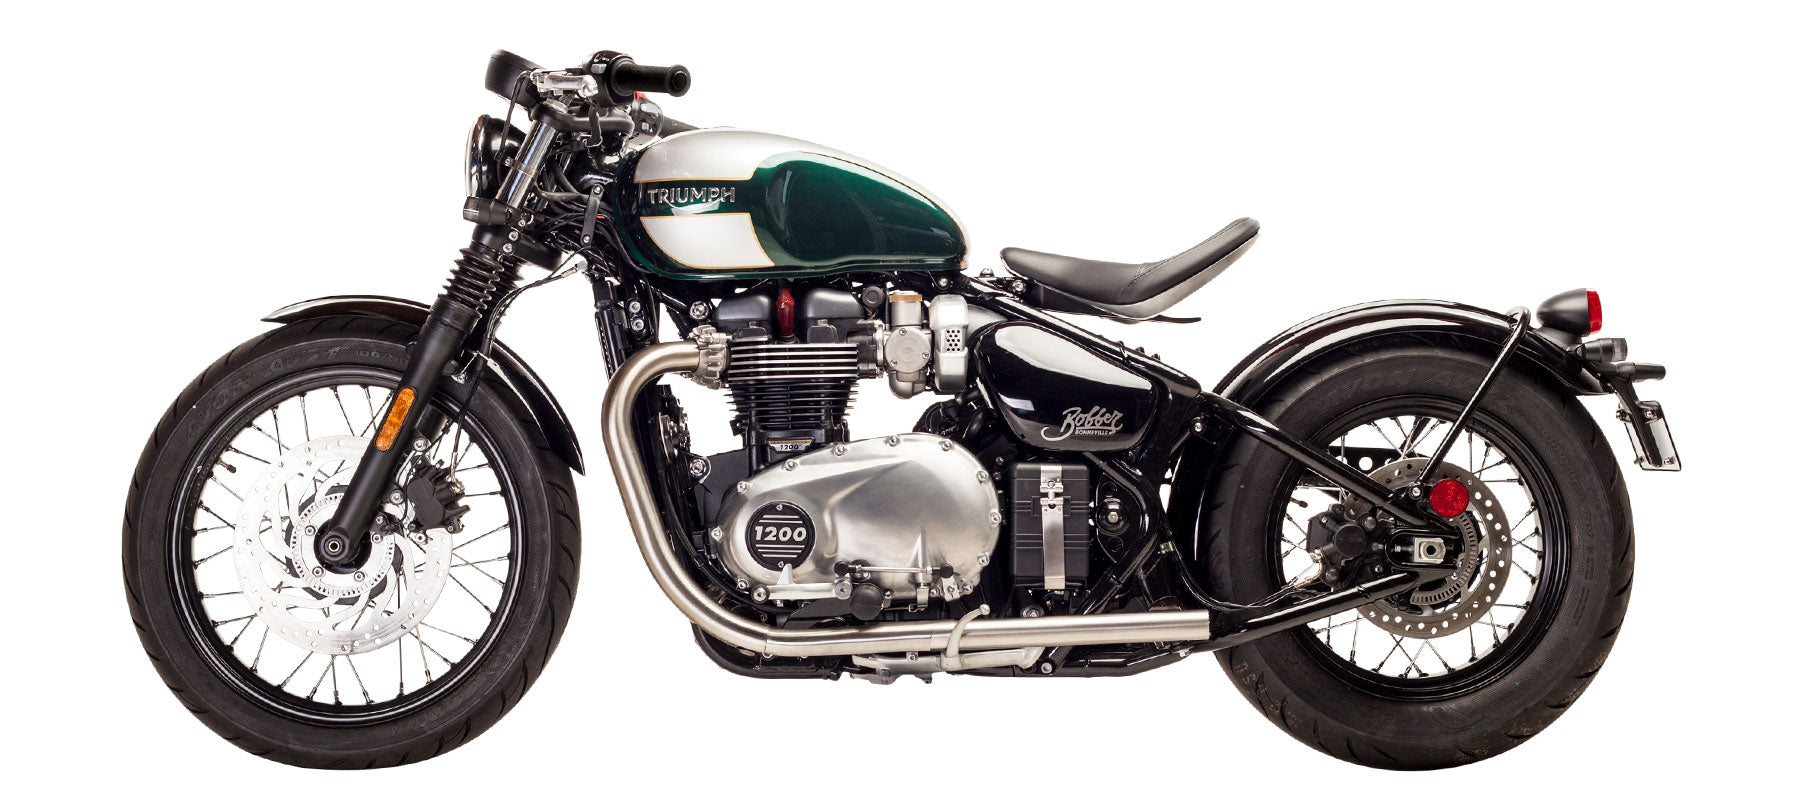 British Customs Straight Pipe Performance Tips for Bonneville Bobber